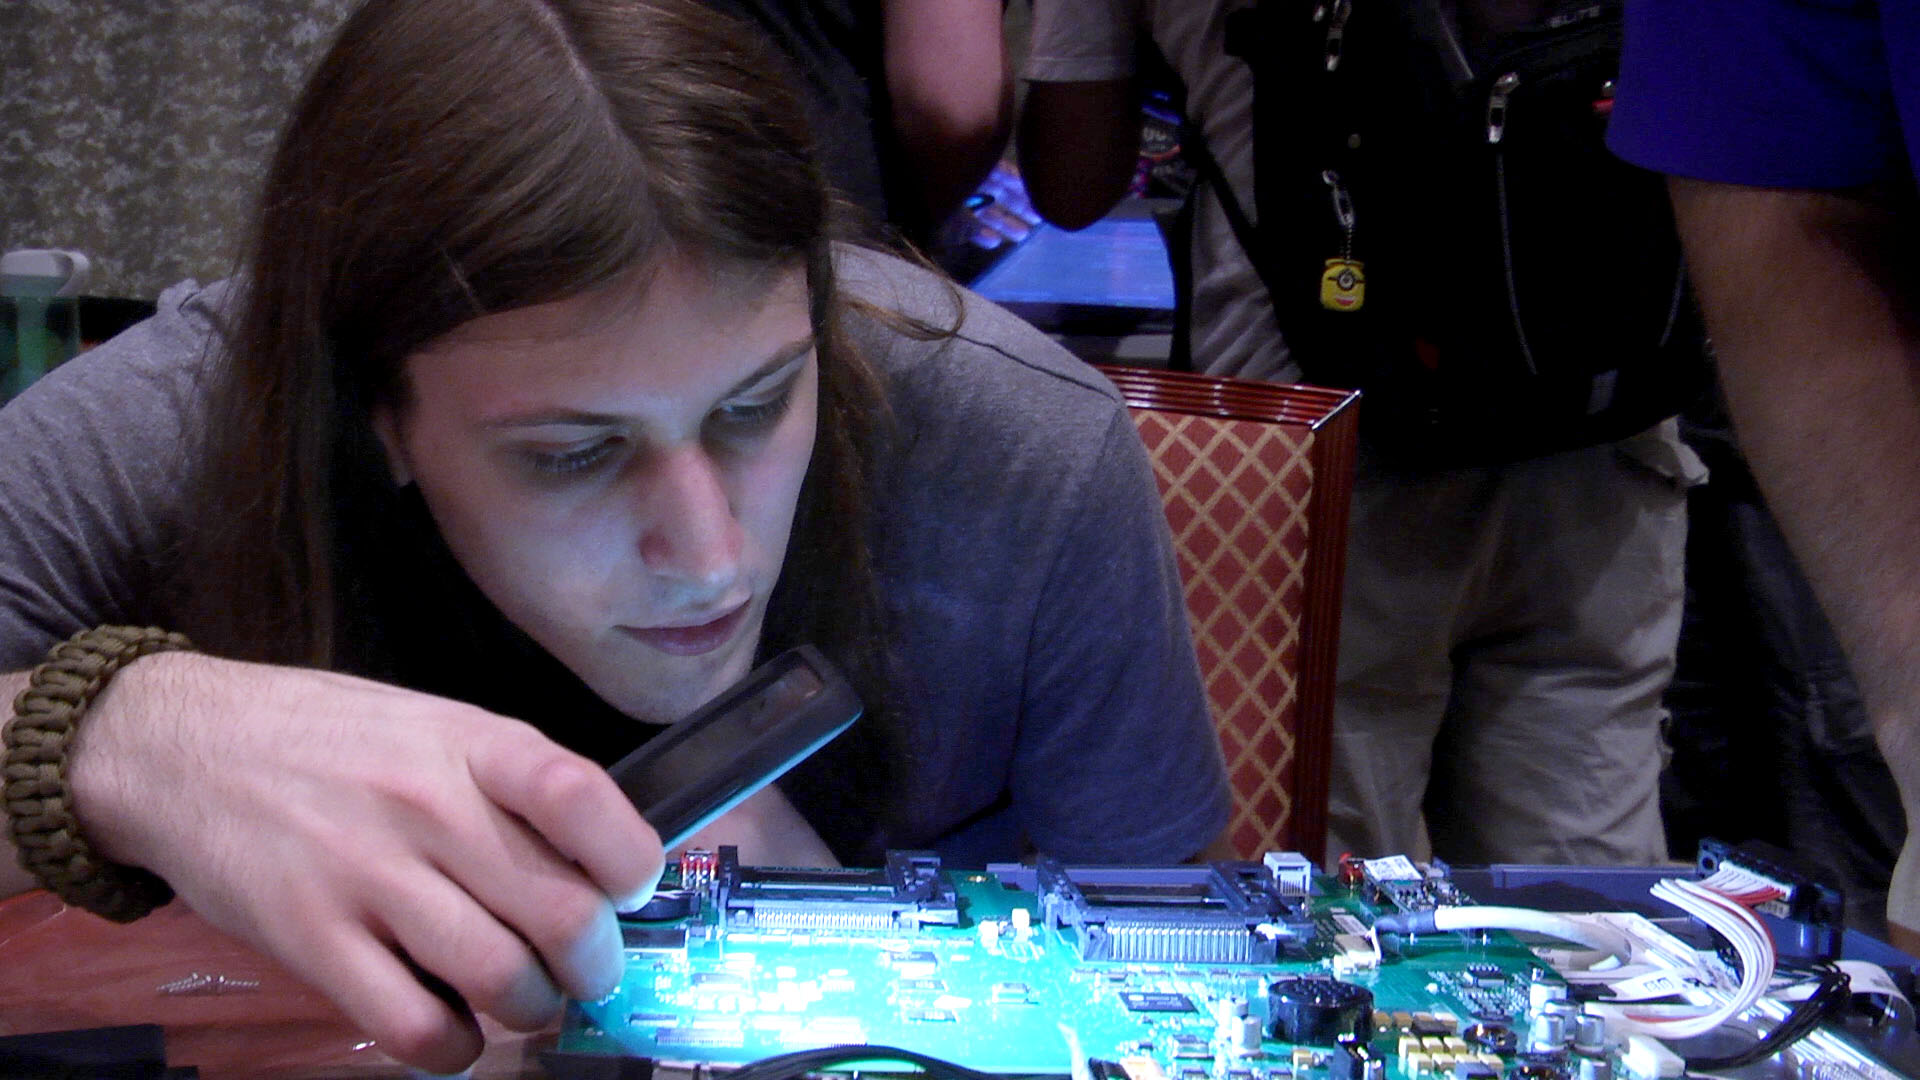 DEF CON 25 Voting Village: Ryan Quasney looks at the board of an AccuVote TSx. Ryan, who is new to hacking estimated he could manipulate votes within two months. He thought an experienced hacker could do it in less than a week.  Photo credit: Lulu Friesdat ©2017